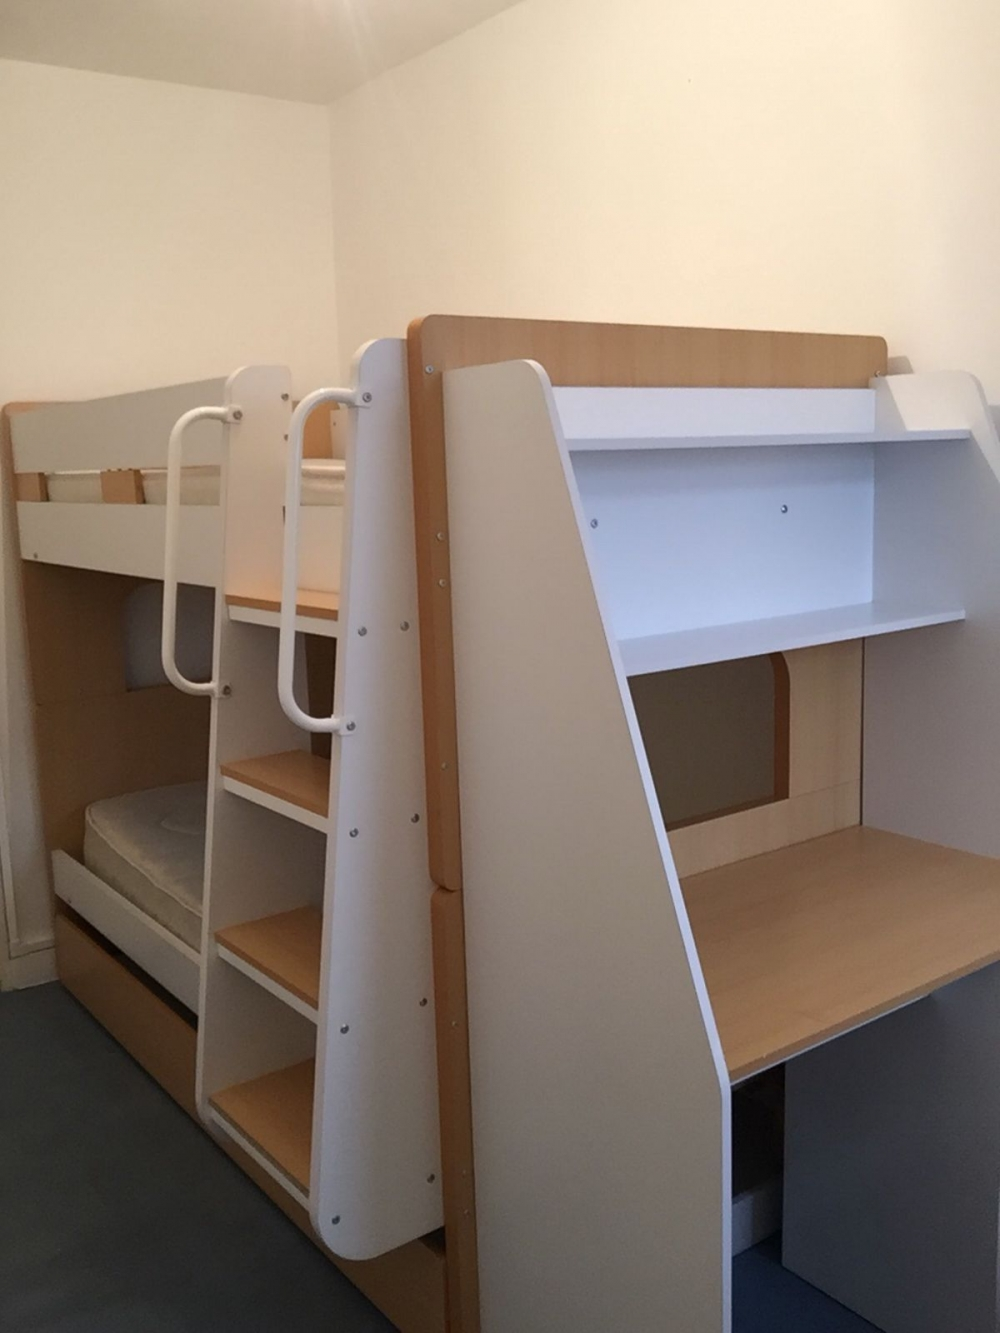 Stunning Bunk Bed with Desk and Drawers On